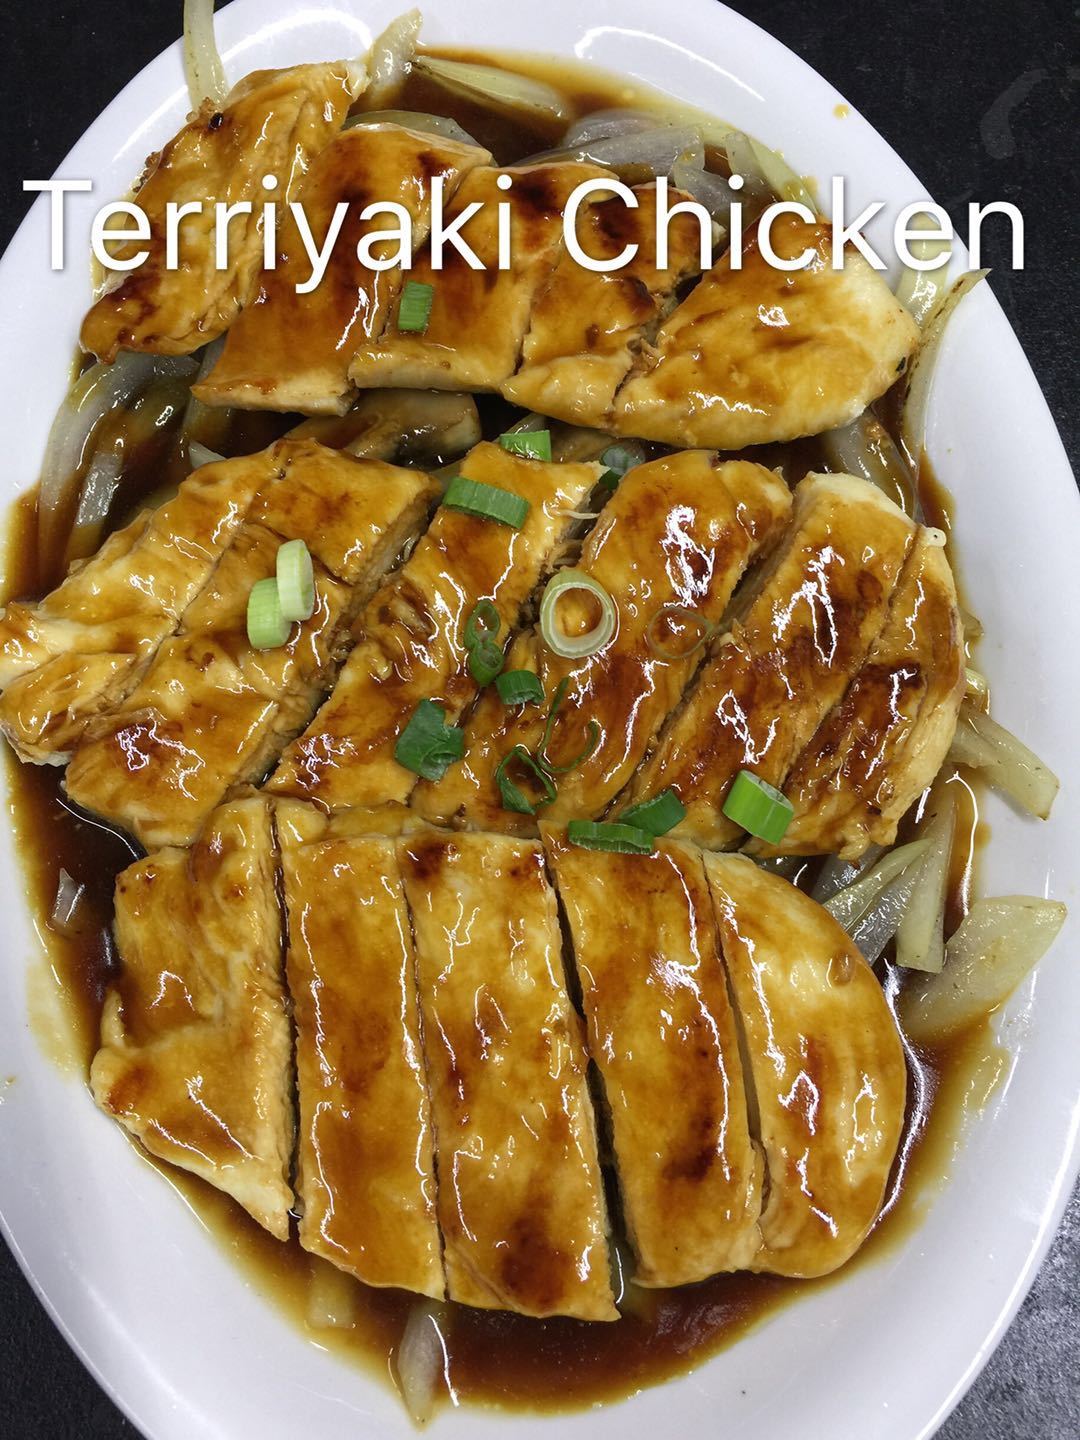 Teriyaki Chicken Image